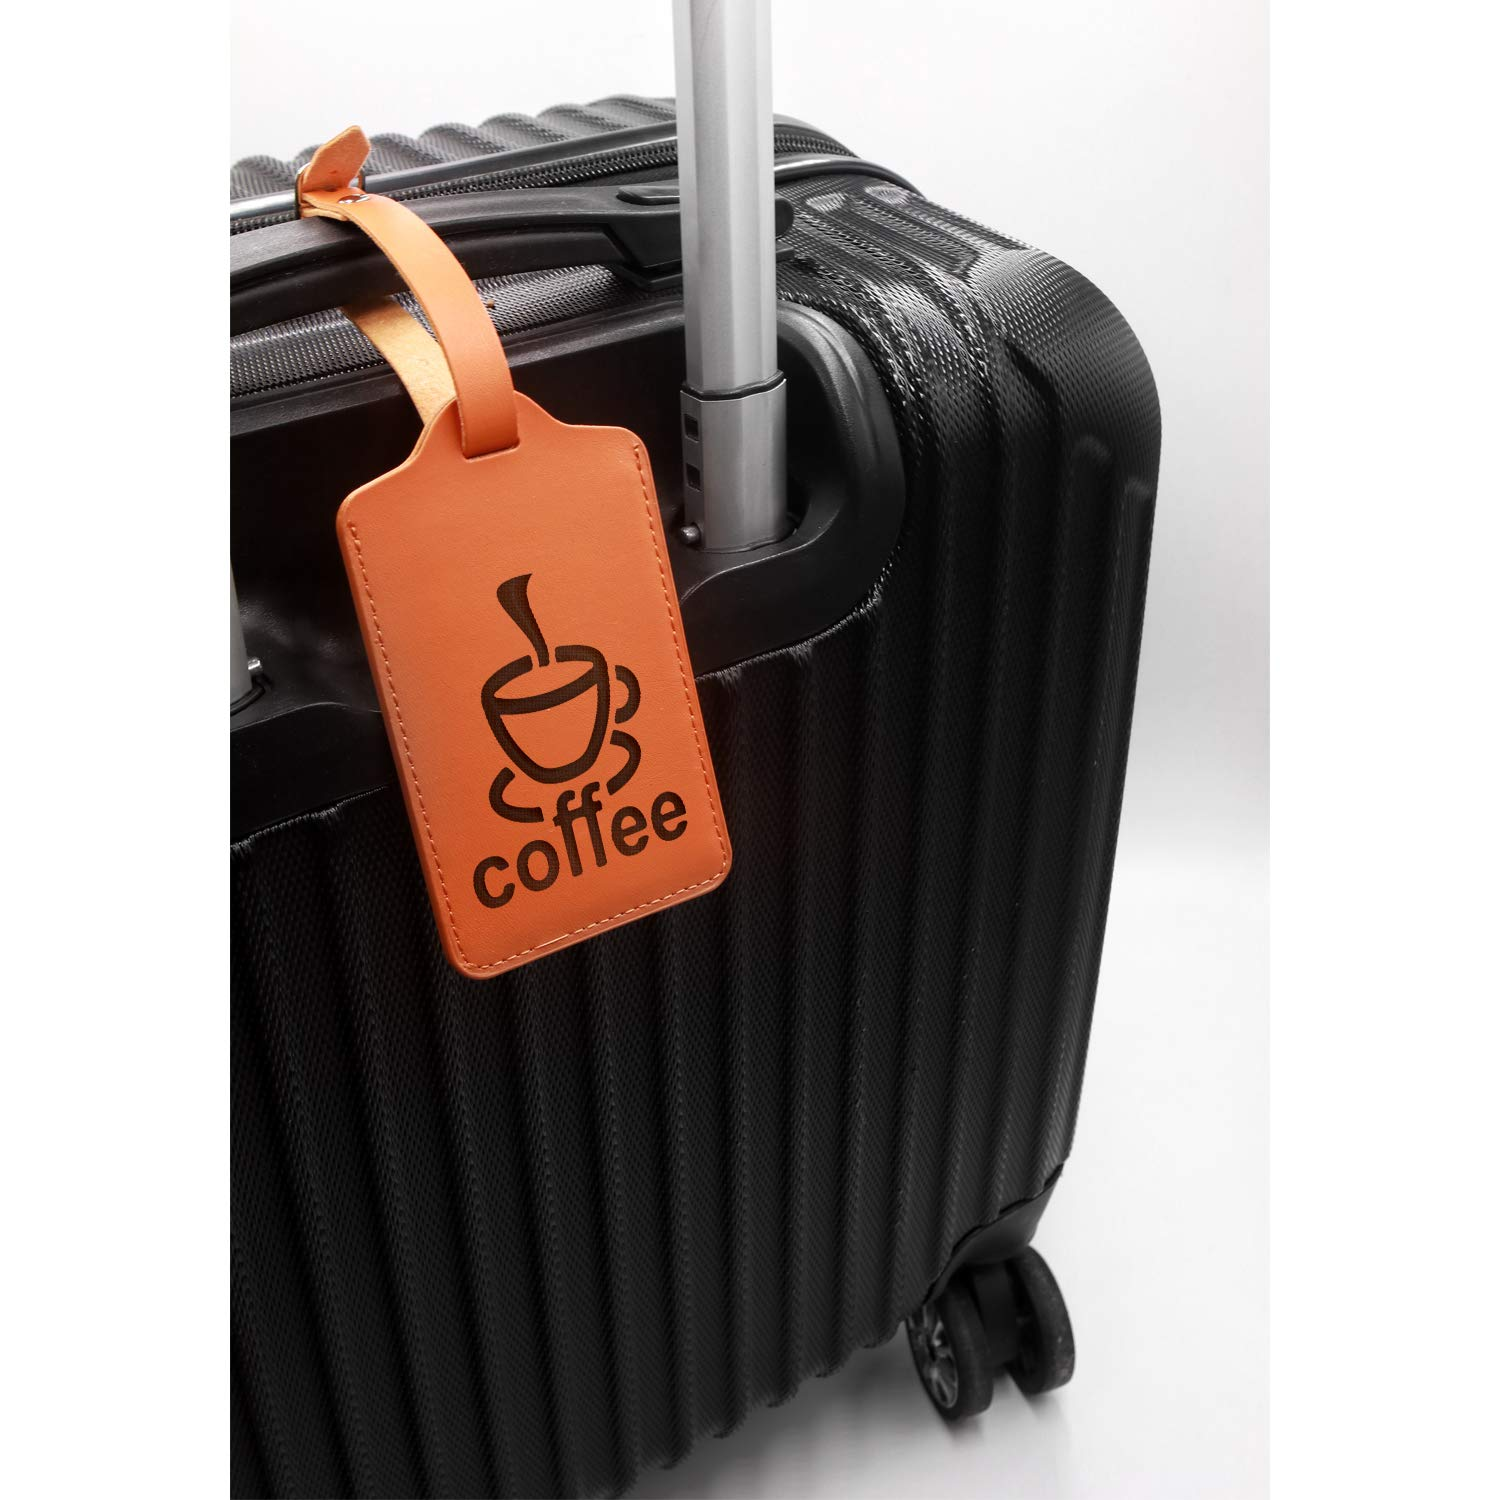 Handcrafted By Mastercraftsmen - United States Standard Coffee Kitchen 2 Engraved Synthetic Pu Leather Luggage Tag For Any Type Of Luggage London Tan - Set Of 2